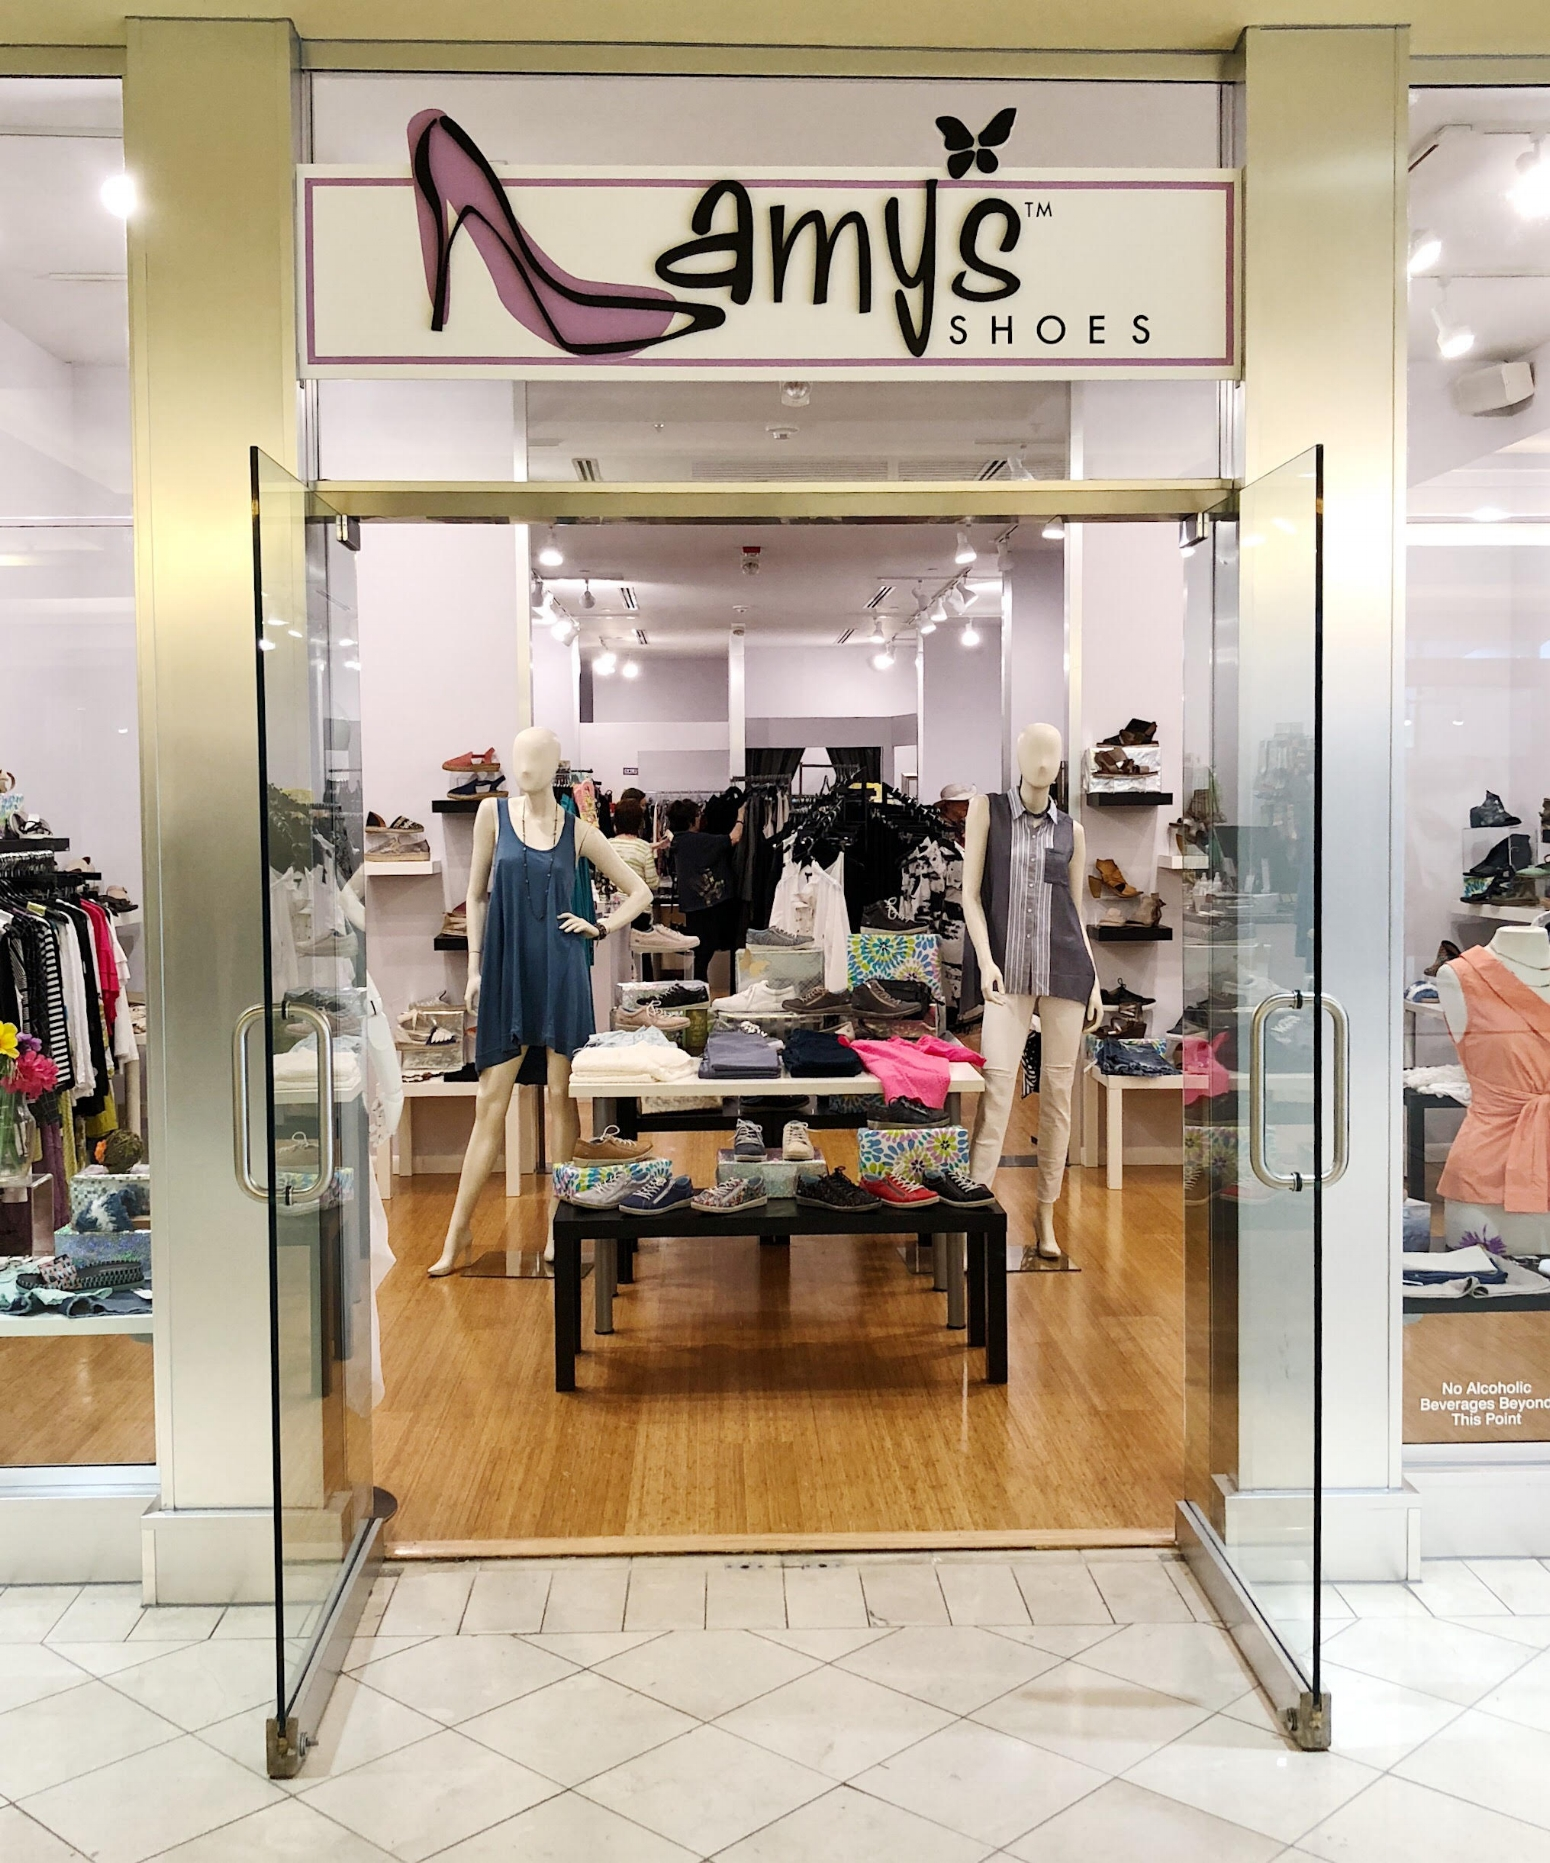 Amy's Shoes & Apparel - Amy's Shoes & Apparel has 2 locations in Cleveland - Rocky River and Eaton Chagrin Boulevard. This boutique carries an amazing assortment of brands that you wouldn't typically find in a departments store or chain store. It is a one-stop-shop with styles that work well for ages 20 and beyond. What sets this boutique apart is the amazing customer service you receive from every store associate the minute you walk in the door! They are ready to help and ensure you look and feel your best! If you are not in the Cleveland area, you can shop online or they are happy to ship any item that you see on their Instagram and Facebook pages.